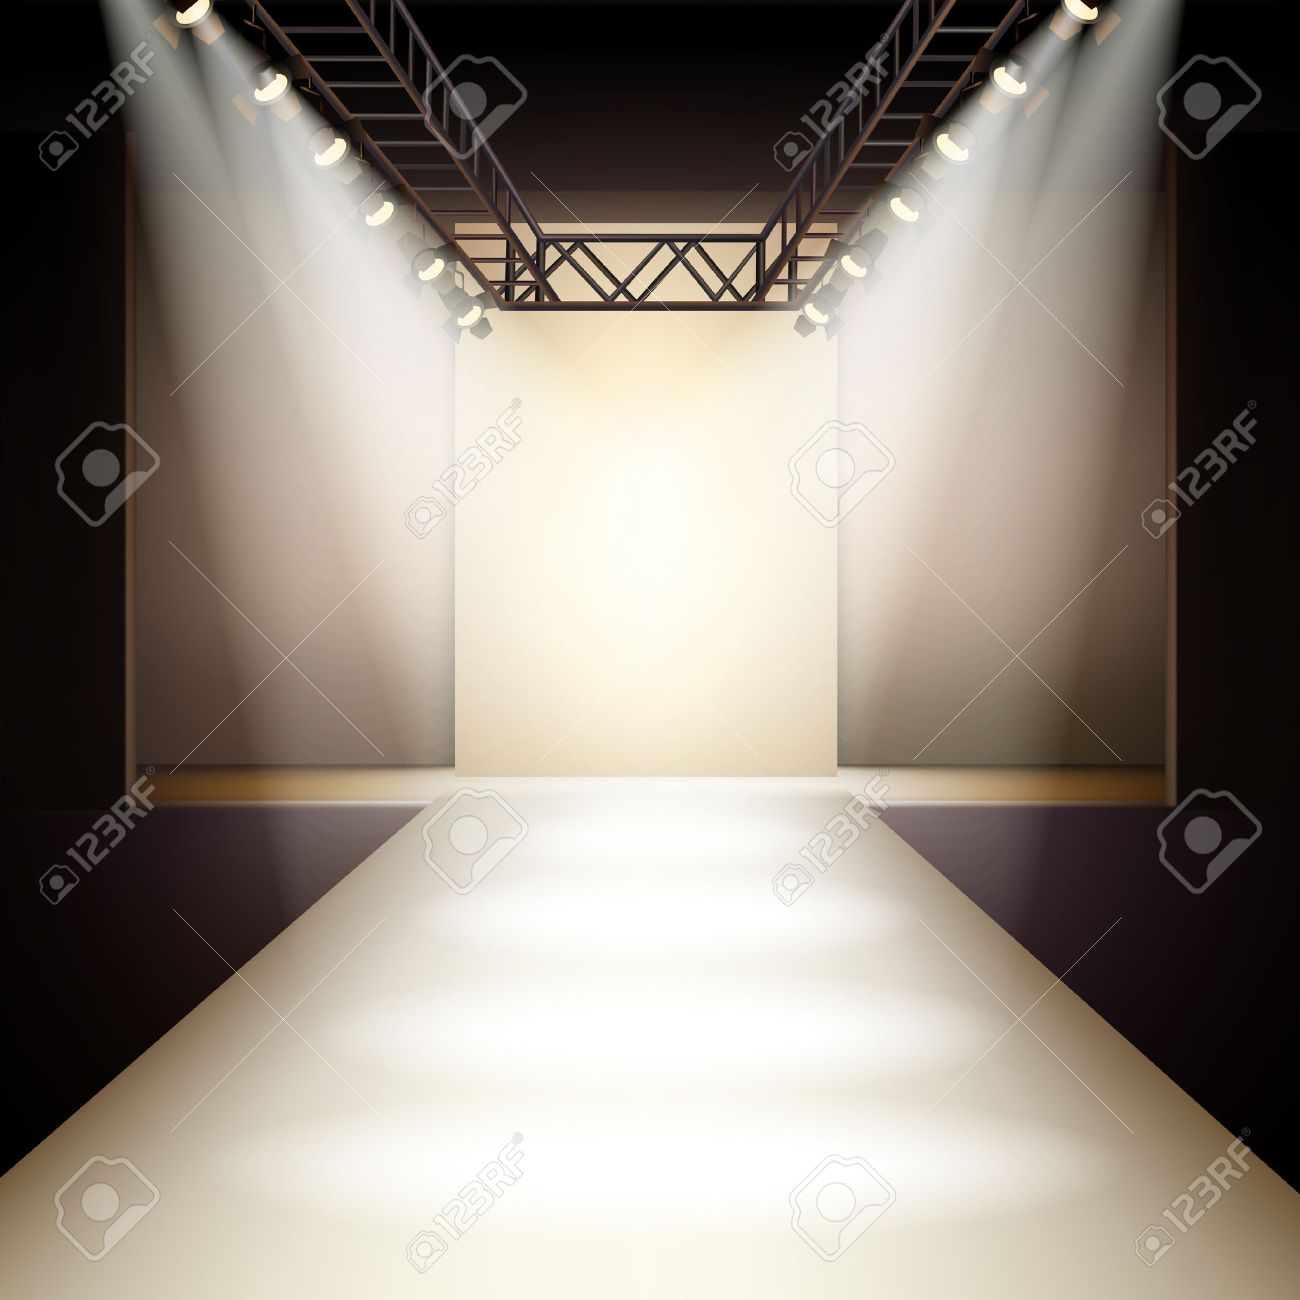 Empty outdoor rock stage - Empty Stage Empty Fashion Runway Podium Stage Interior Realistic Background Vector Illustration